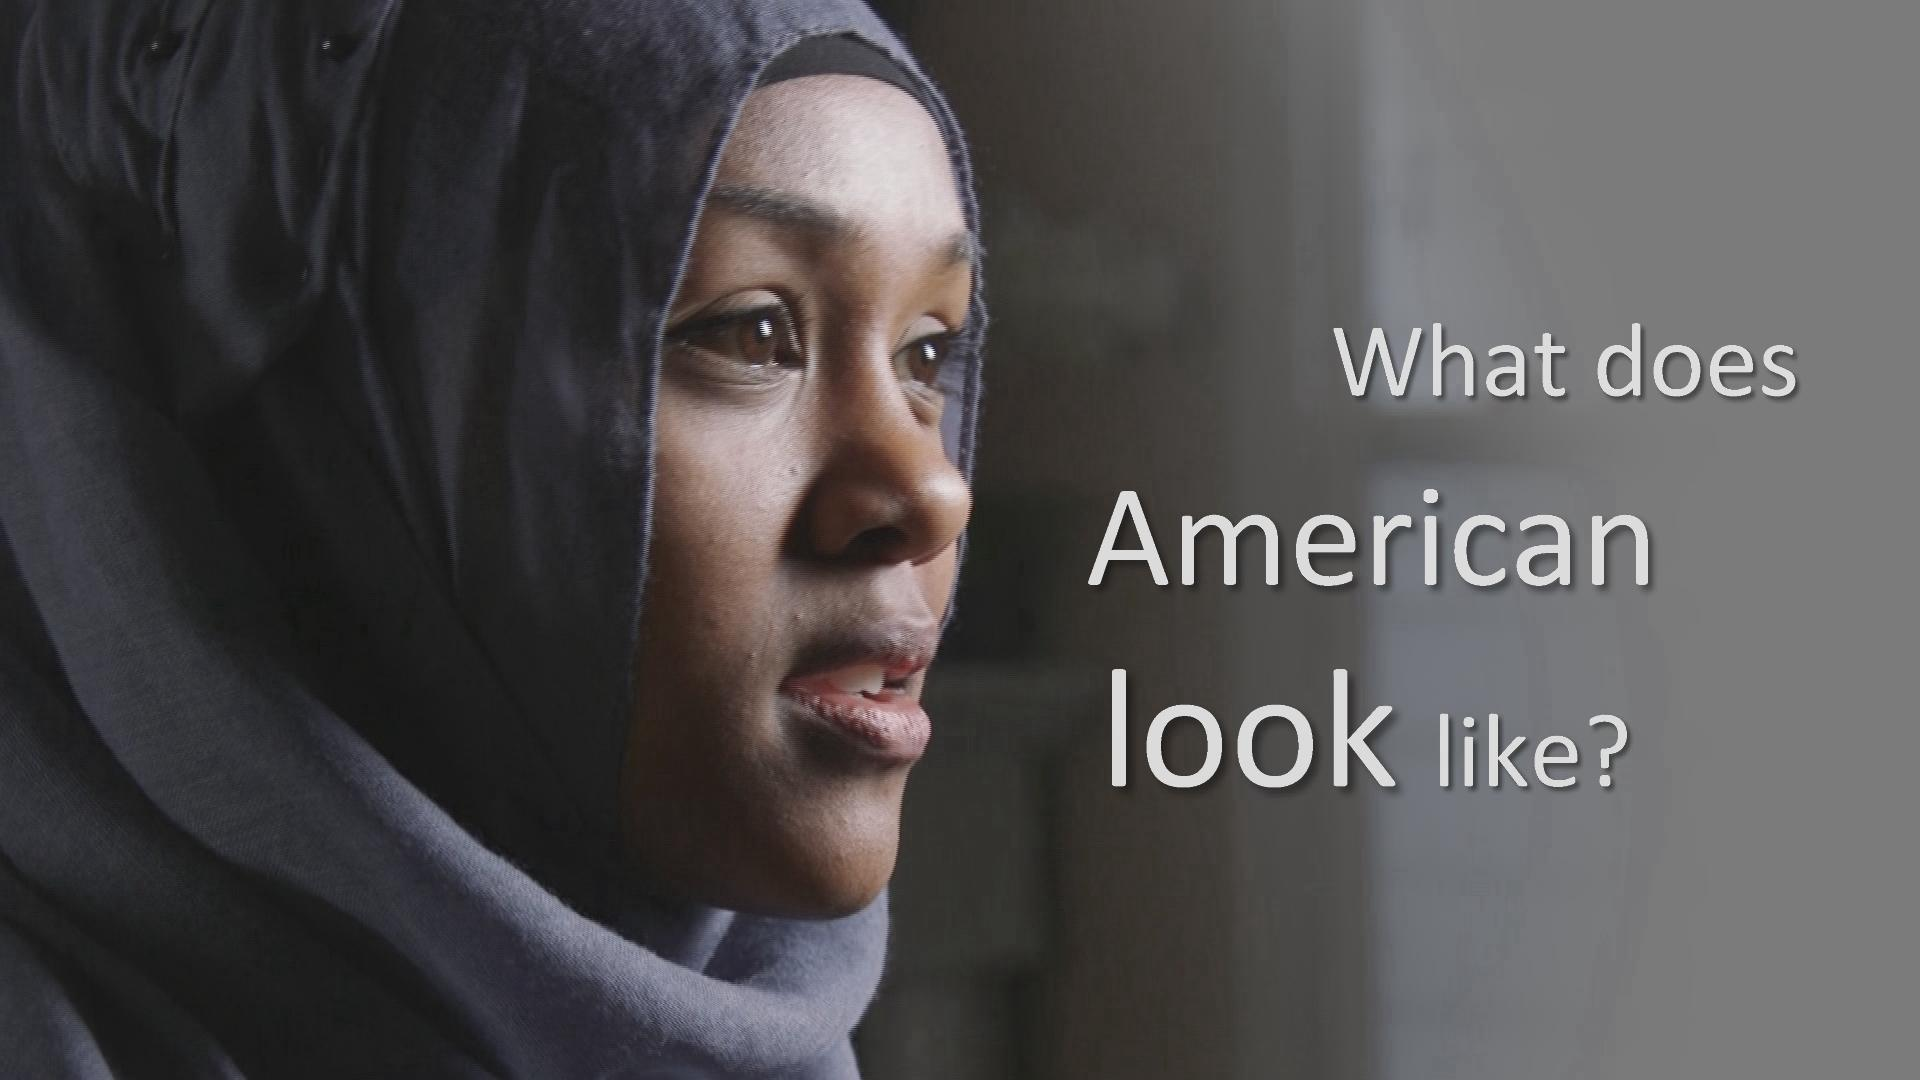 What does American look like?